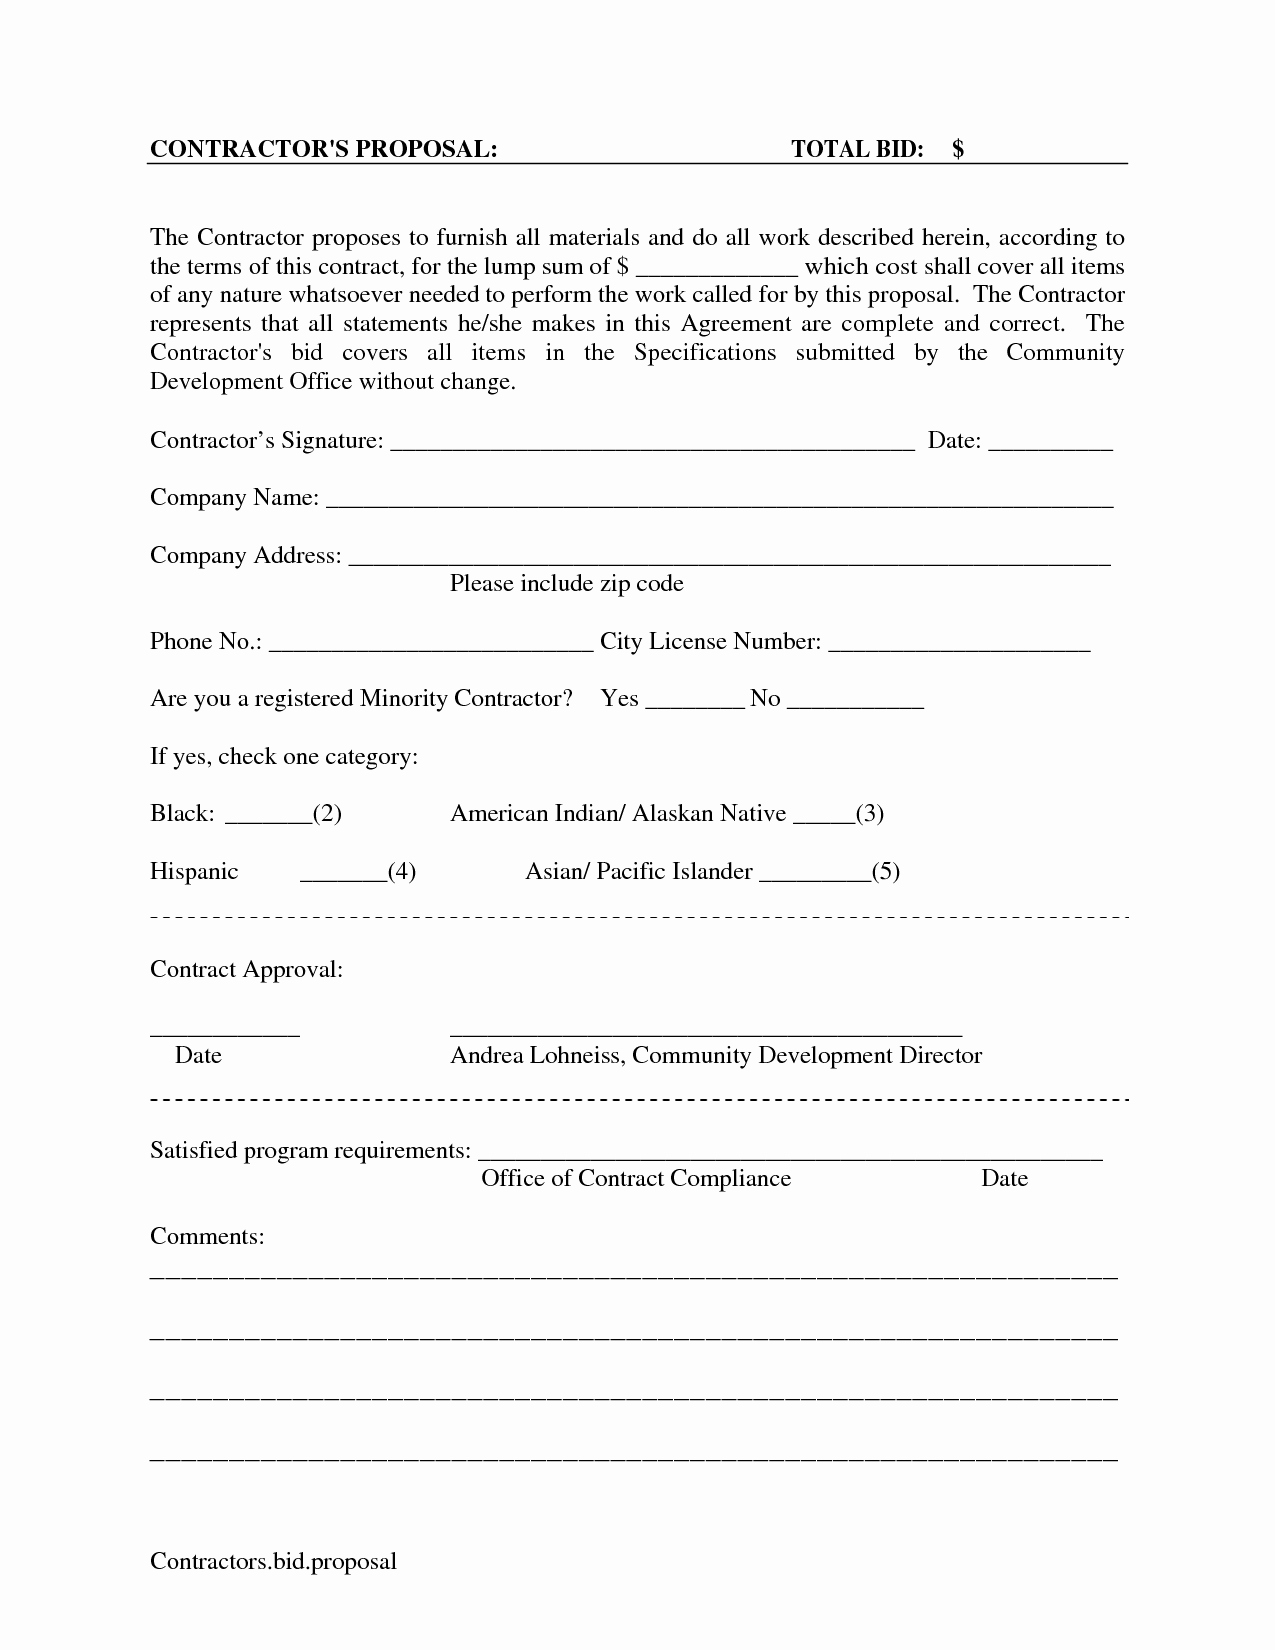 Free Proposal form Template Luxury Proposal On Pinterest